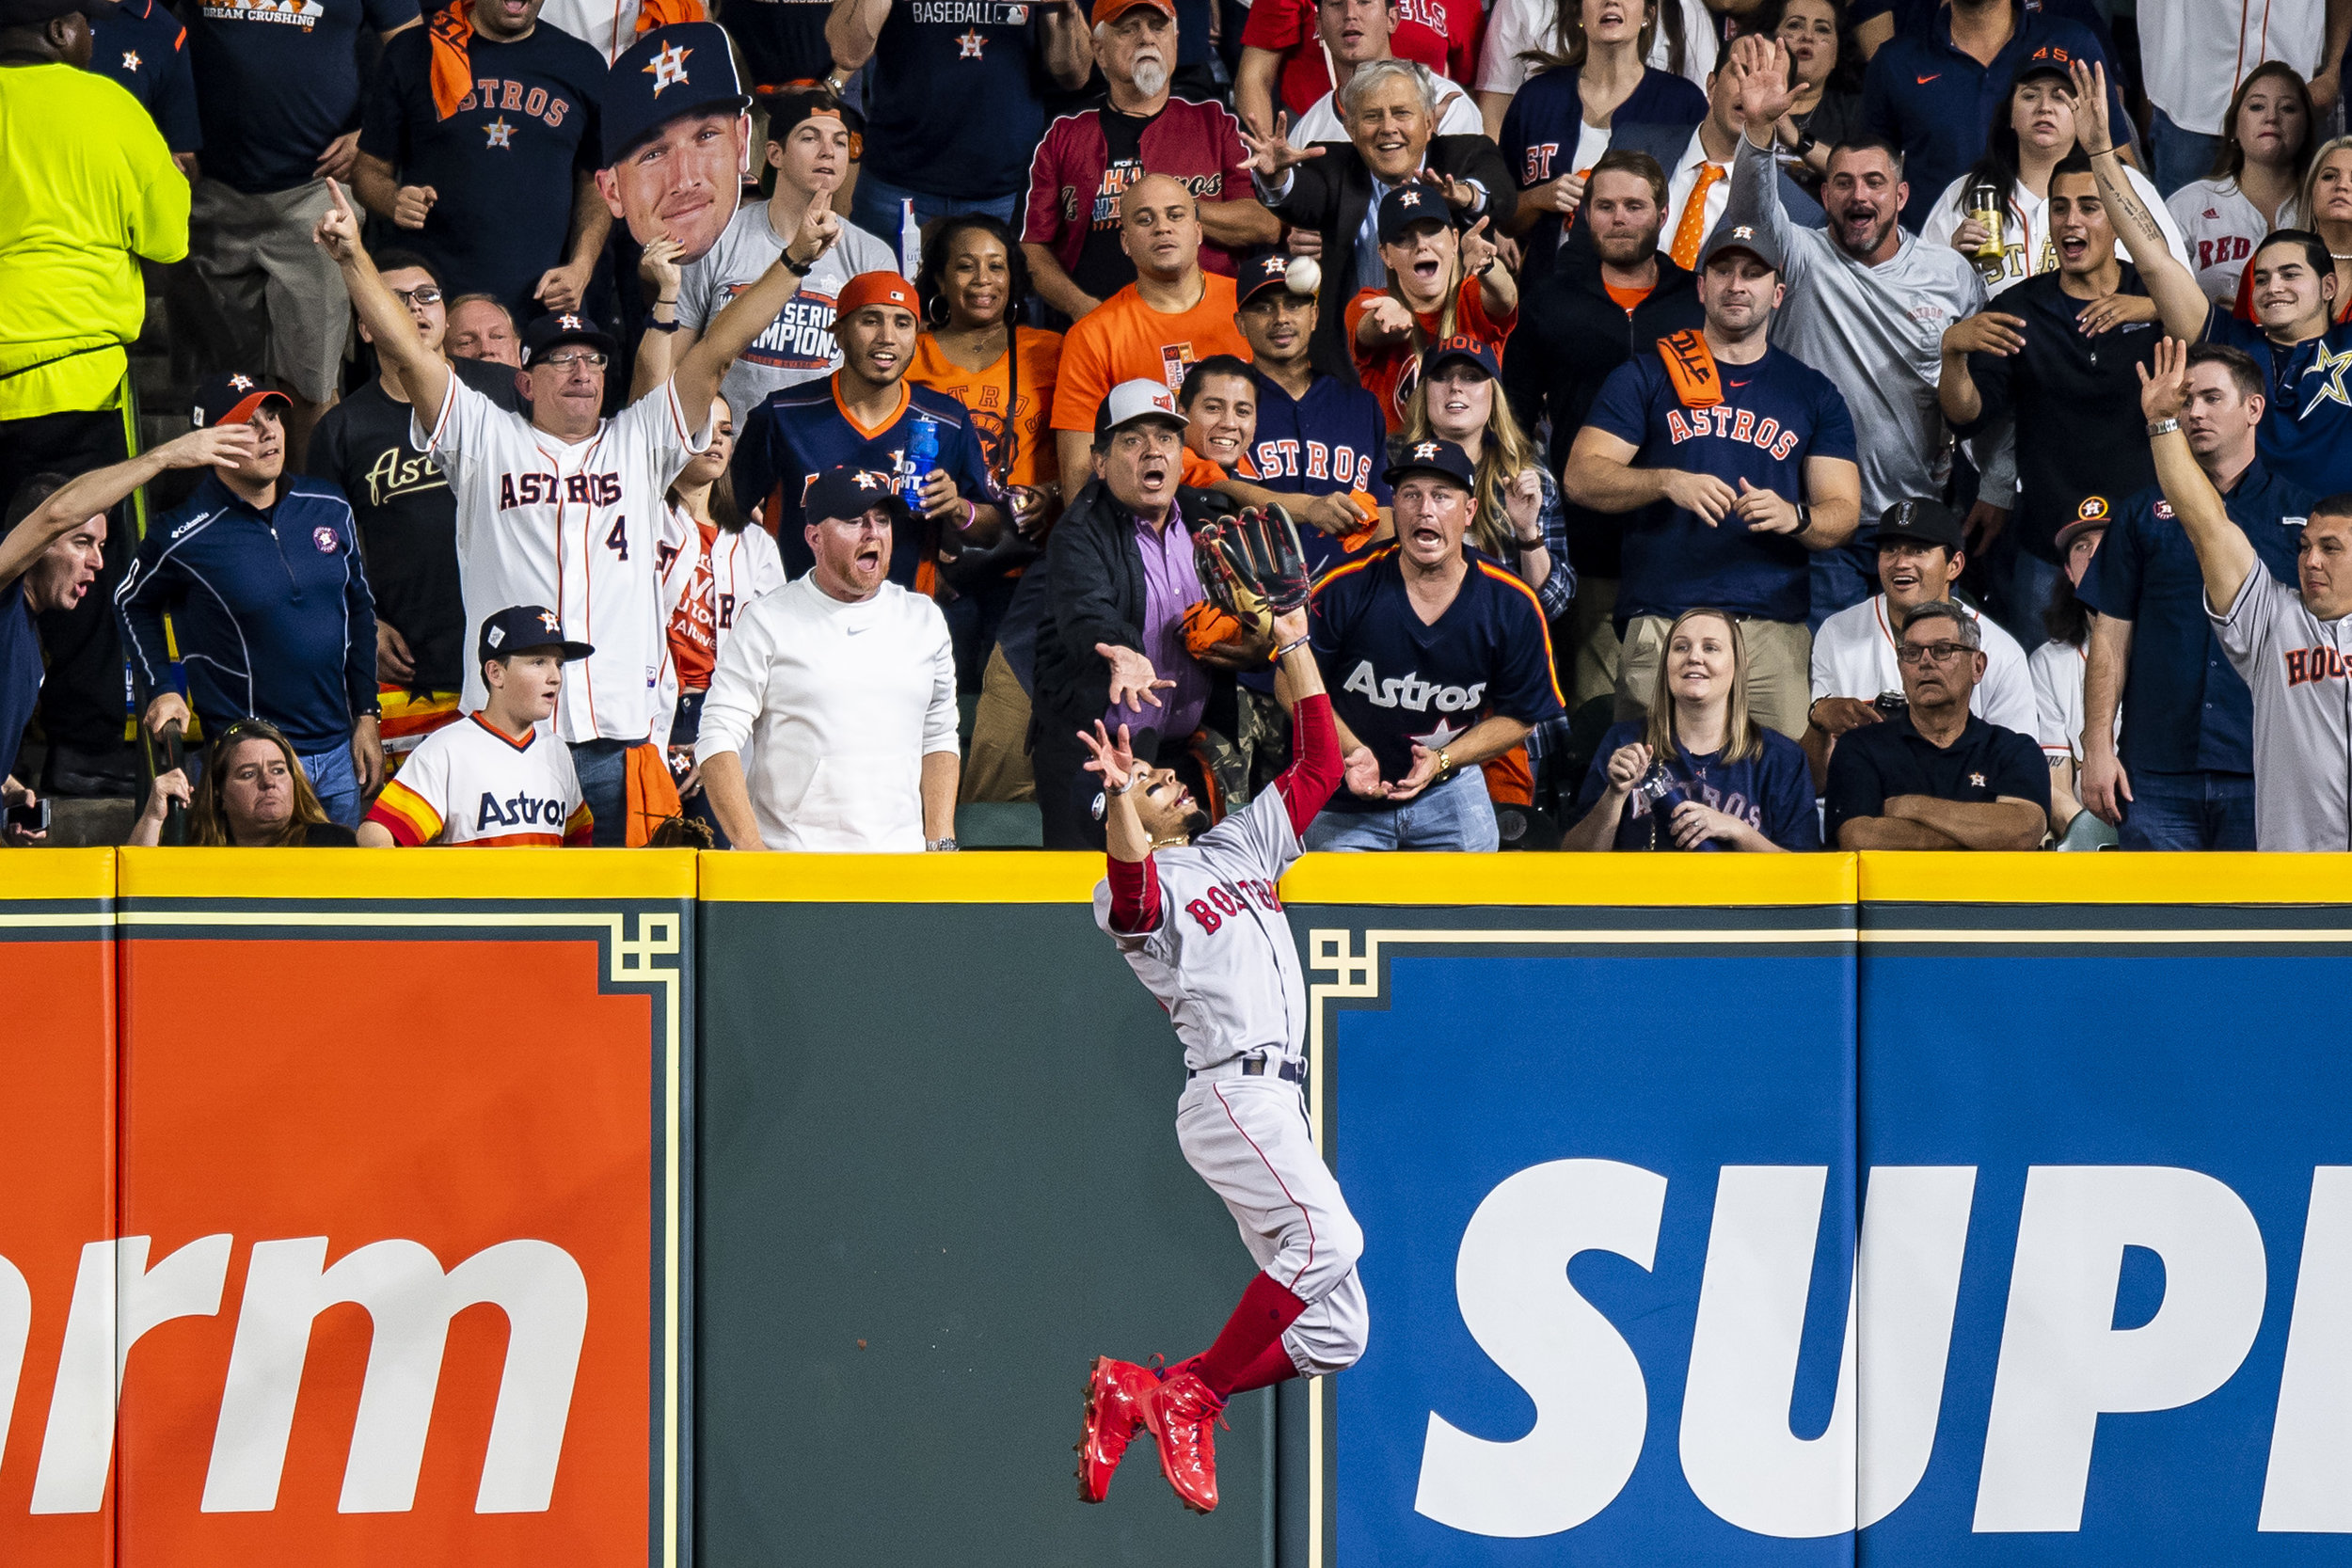 October 18, 2018, Houston, TX: Boston Red Sox outfielder Mookie Betts leaps and robs Houston Astros third basemen Alex Bergman of a home run as the Boston Red Sox face the Houston Astros in Game 5 of the ALCS at Minute Maid Park in Houston, Texas on Thursday, October 18, 2018. (Photo by Matthew Thomas/Boston Red Sox)